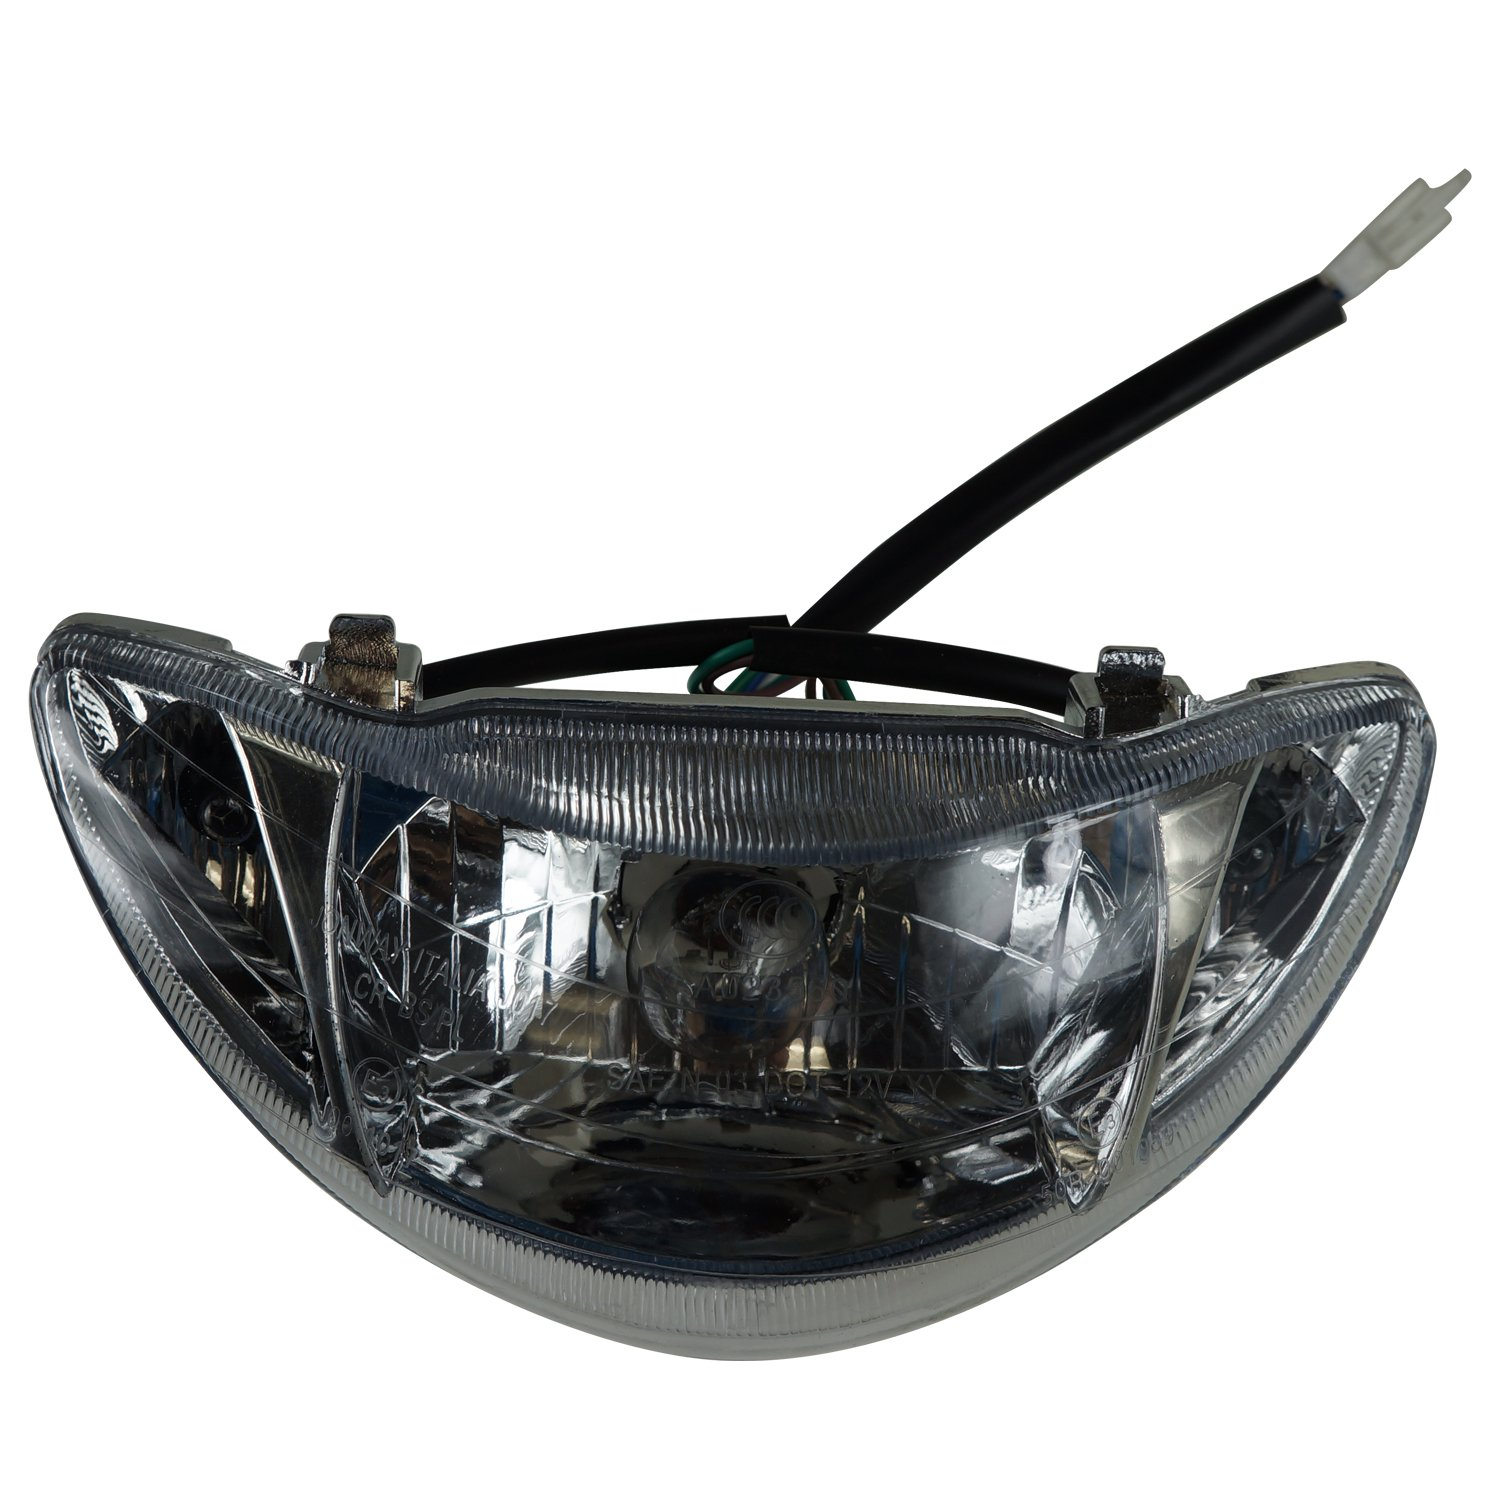 Headlight Assembly for 49cc 50cc Taotao Icebear Roketa Jonway Peace Scooter  Moped